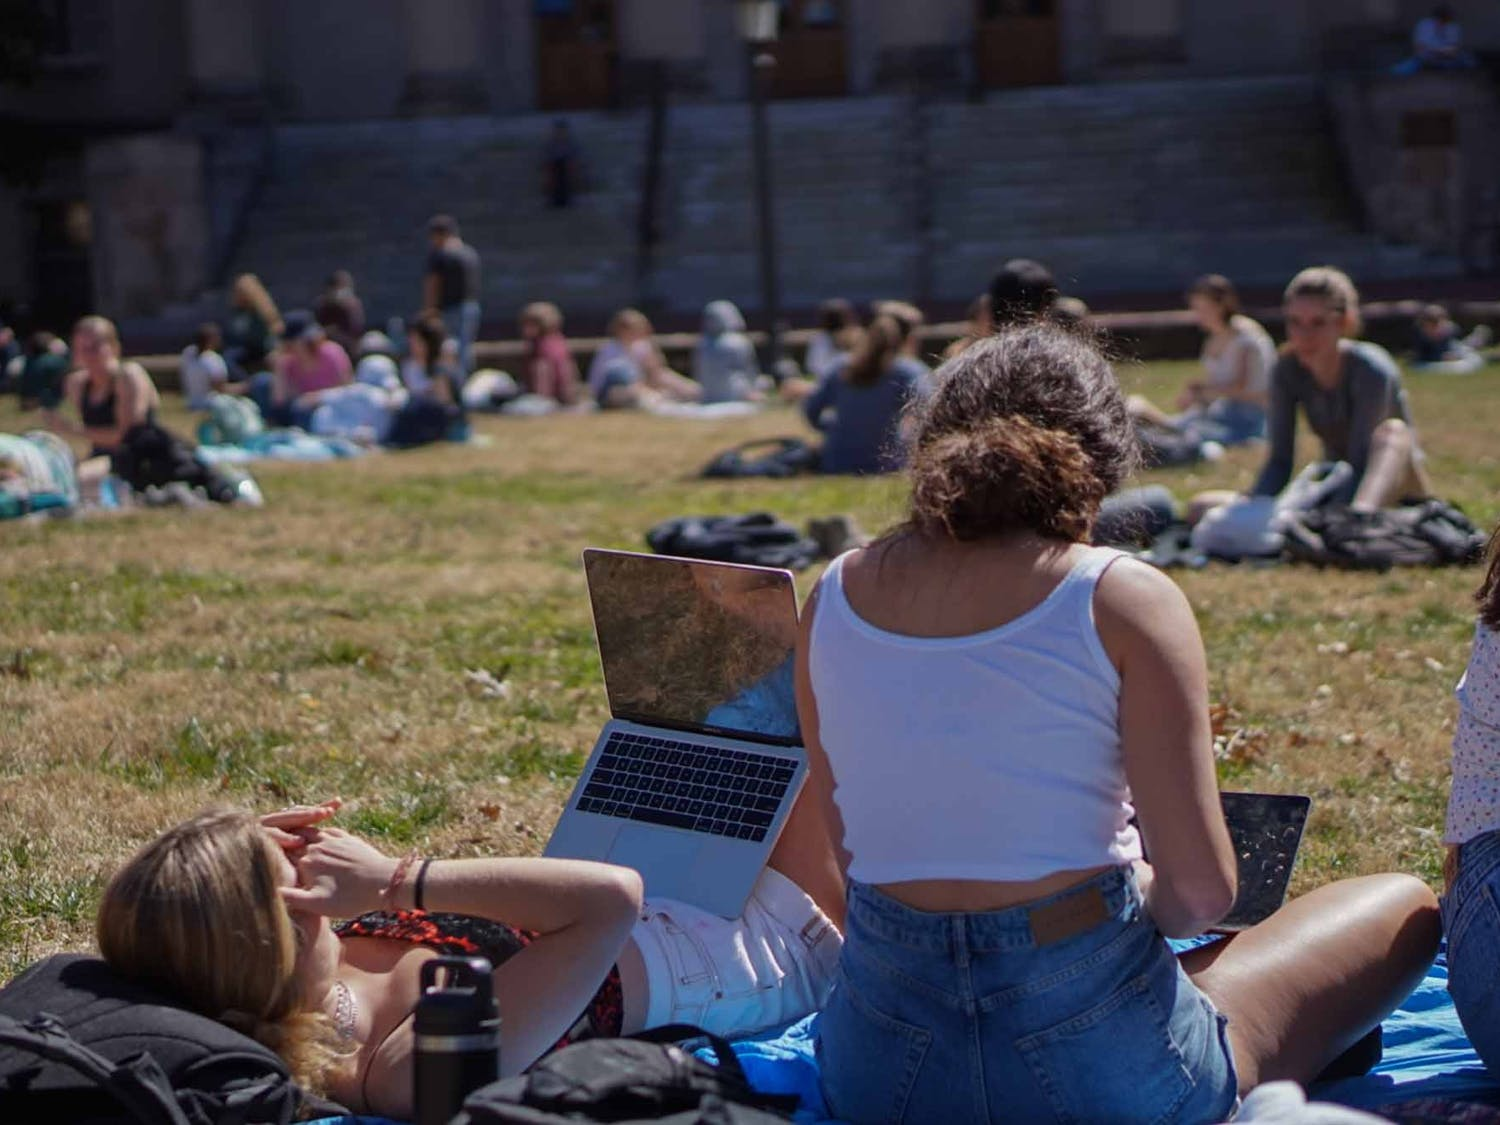 Students embrace the spring weather on the quad on Wednesday, Feb. 24, 2021.